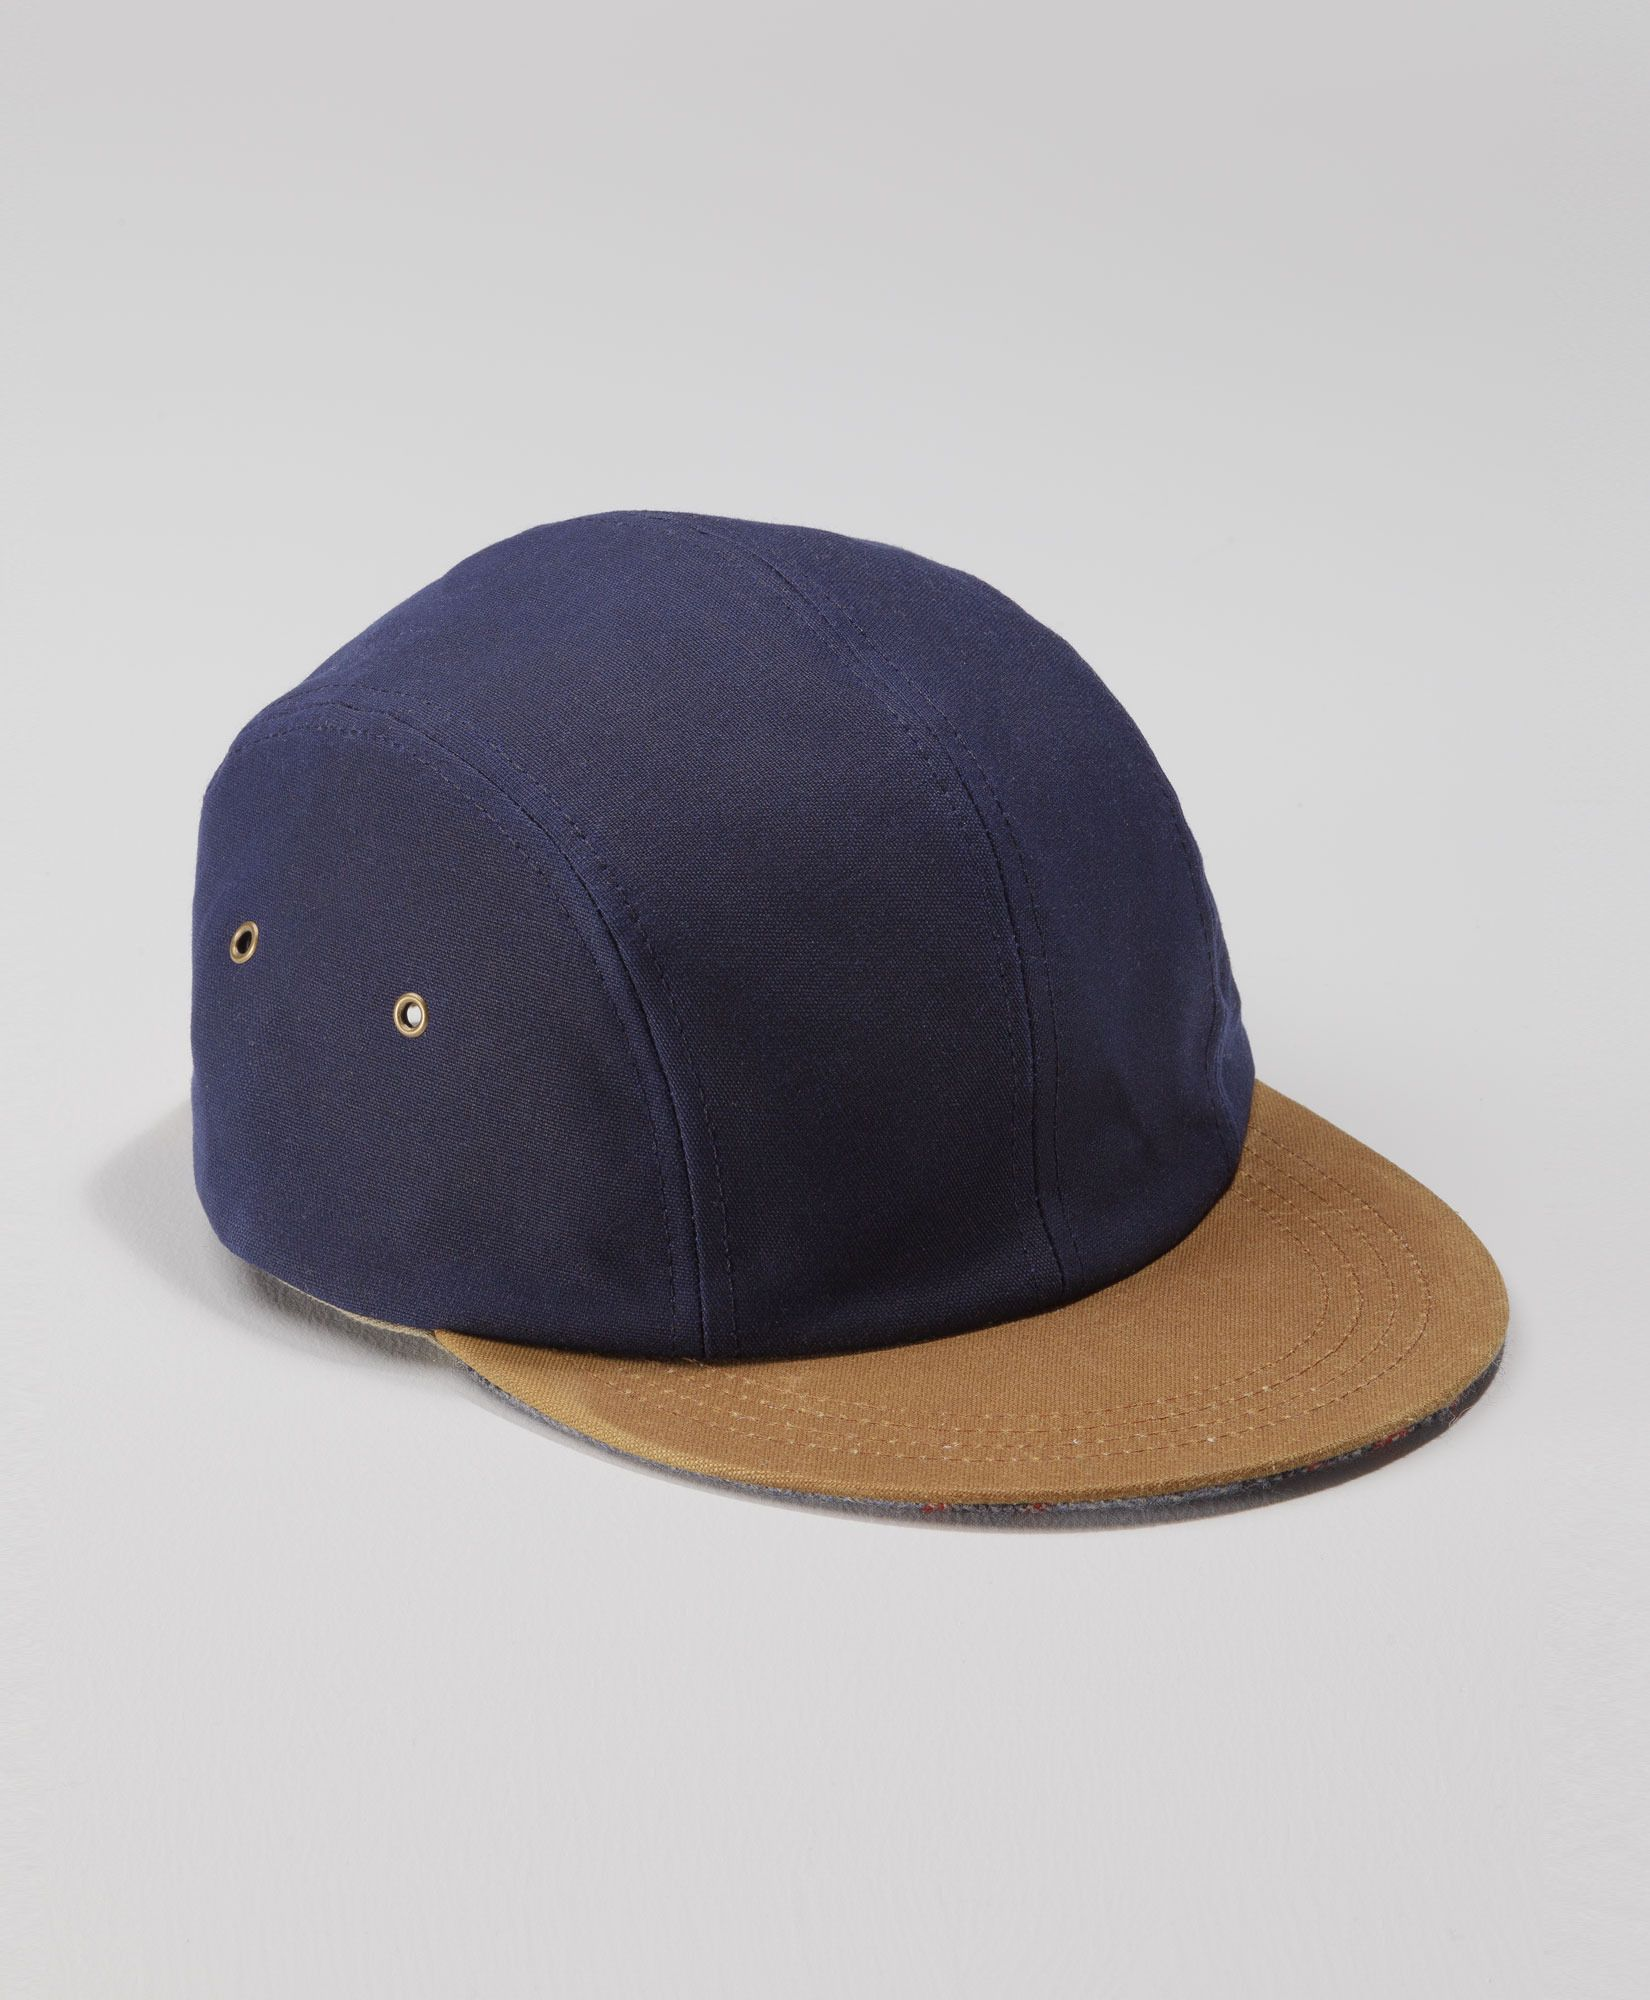 2bf6bccdc43c Levi's Filson Fishing Hat - Indigo & Tan - Levi's® Workwear by Filson®